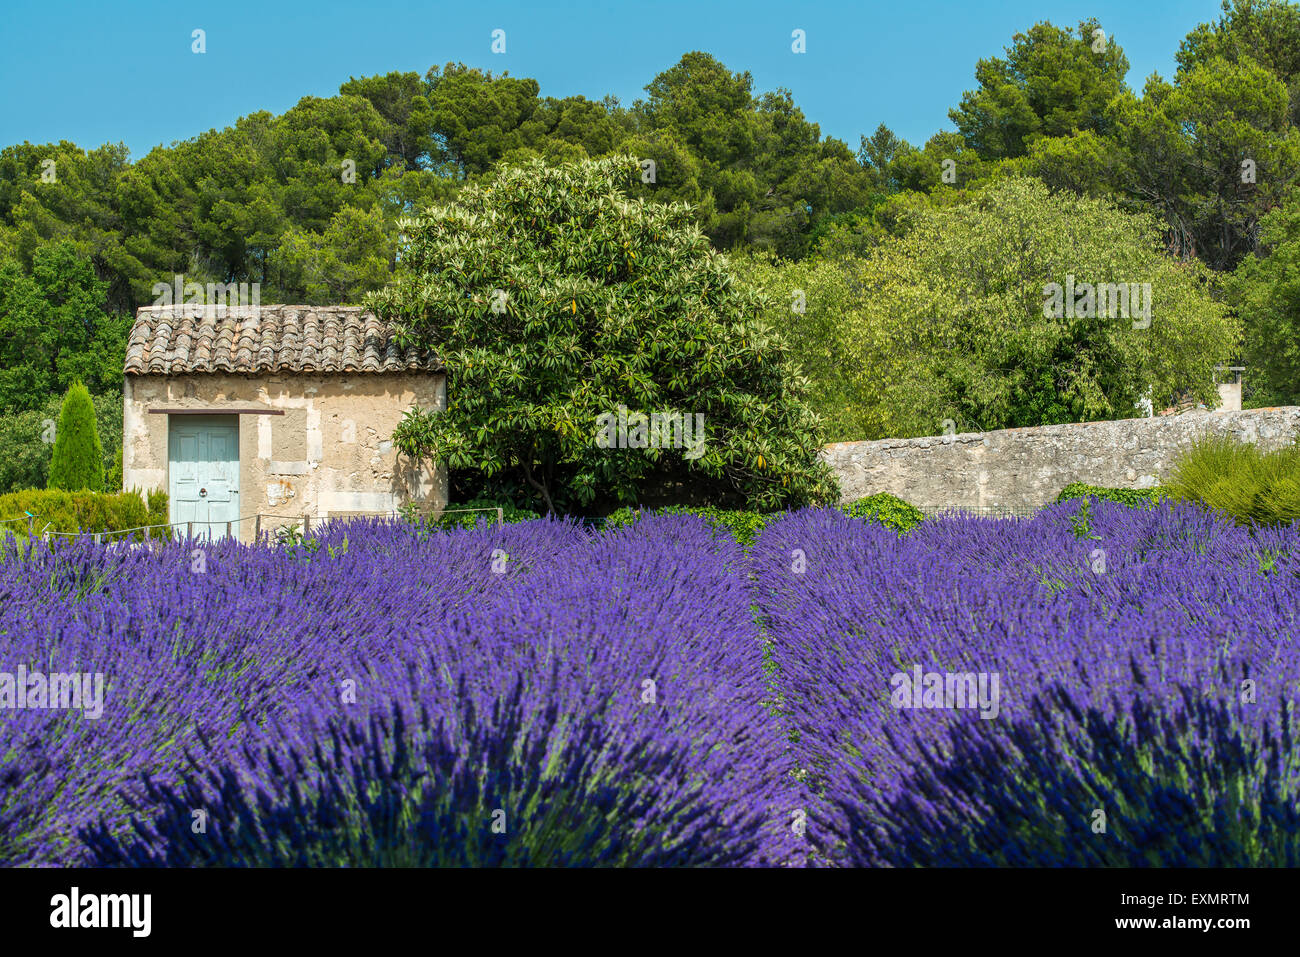 Lavender field with cottage stone, Provence, France - Stock Image